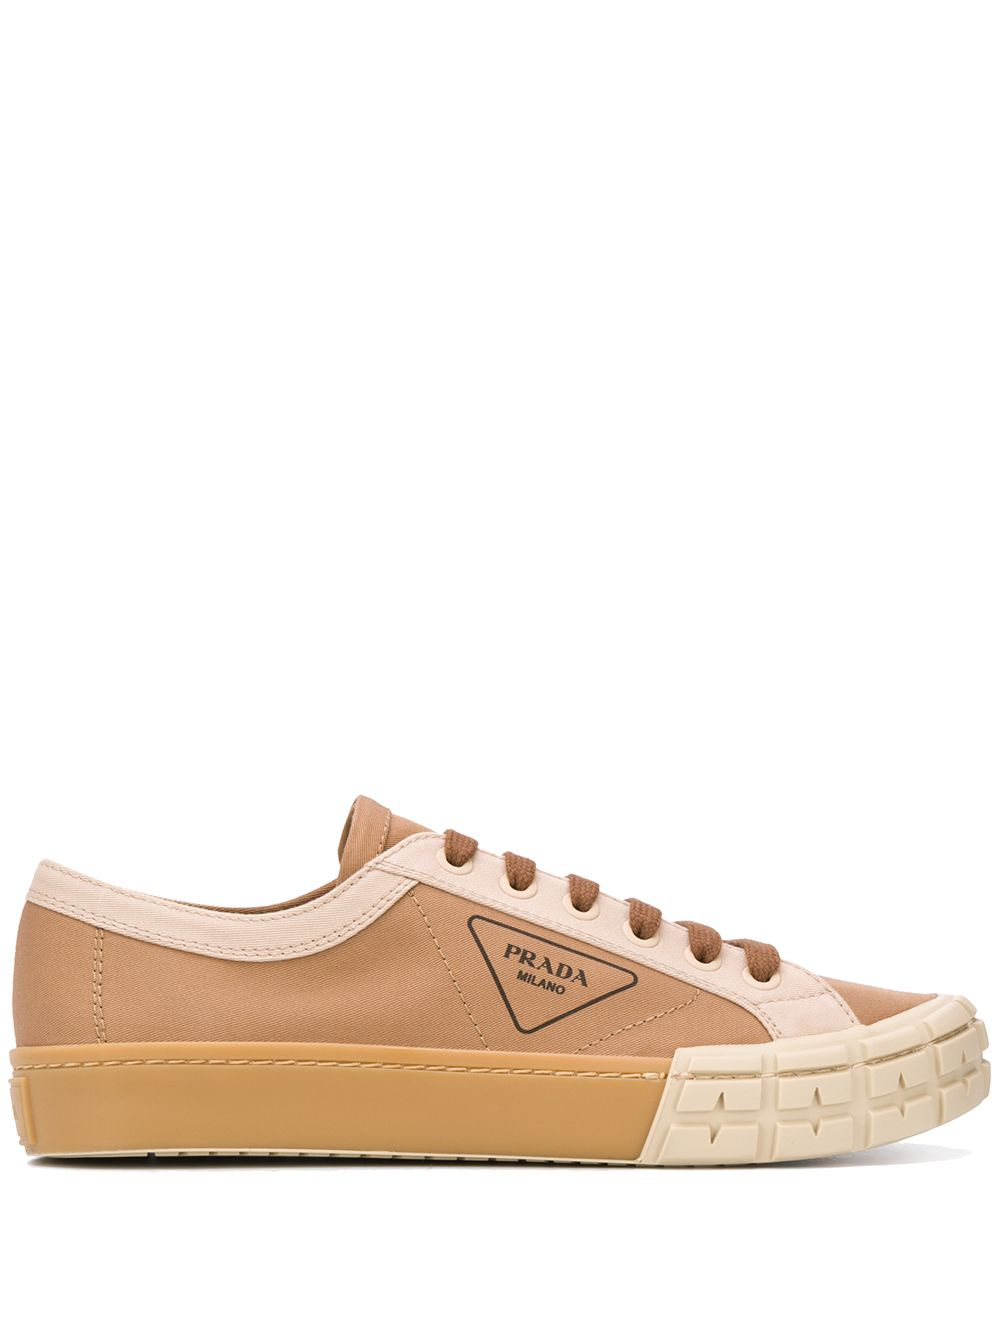 Prada logo lace-up sneakers - Neutrals von Prada